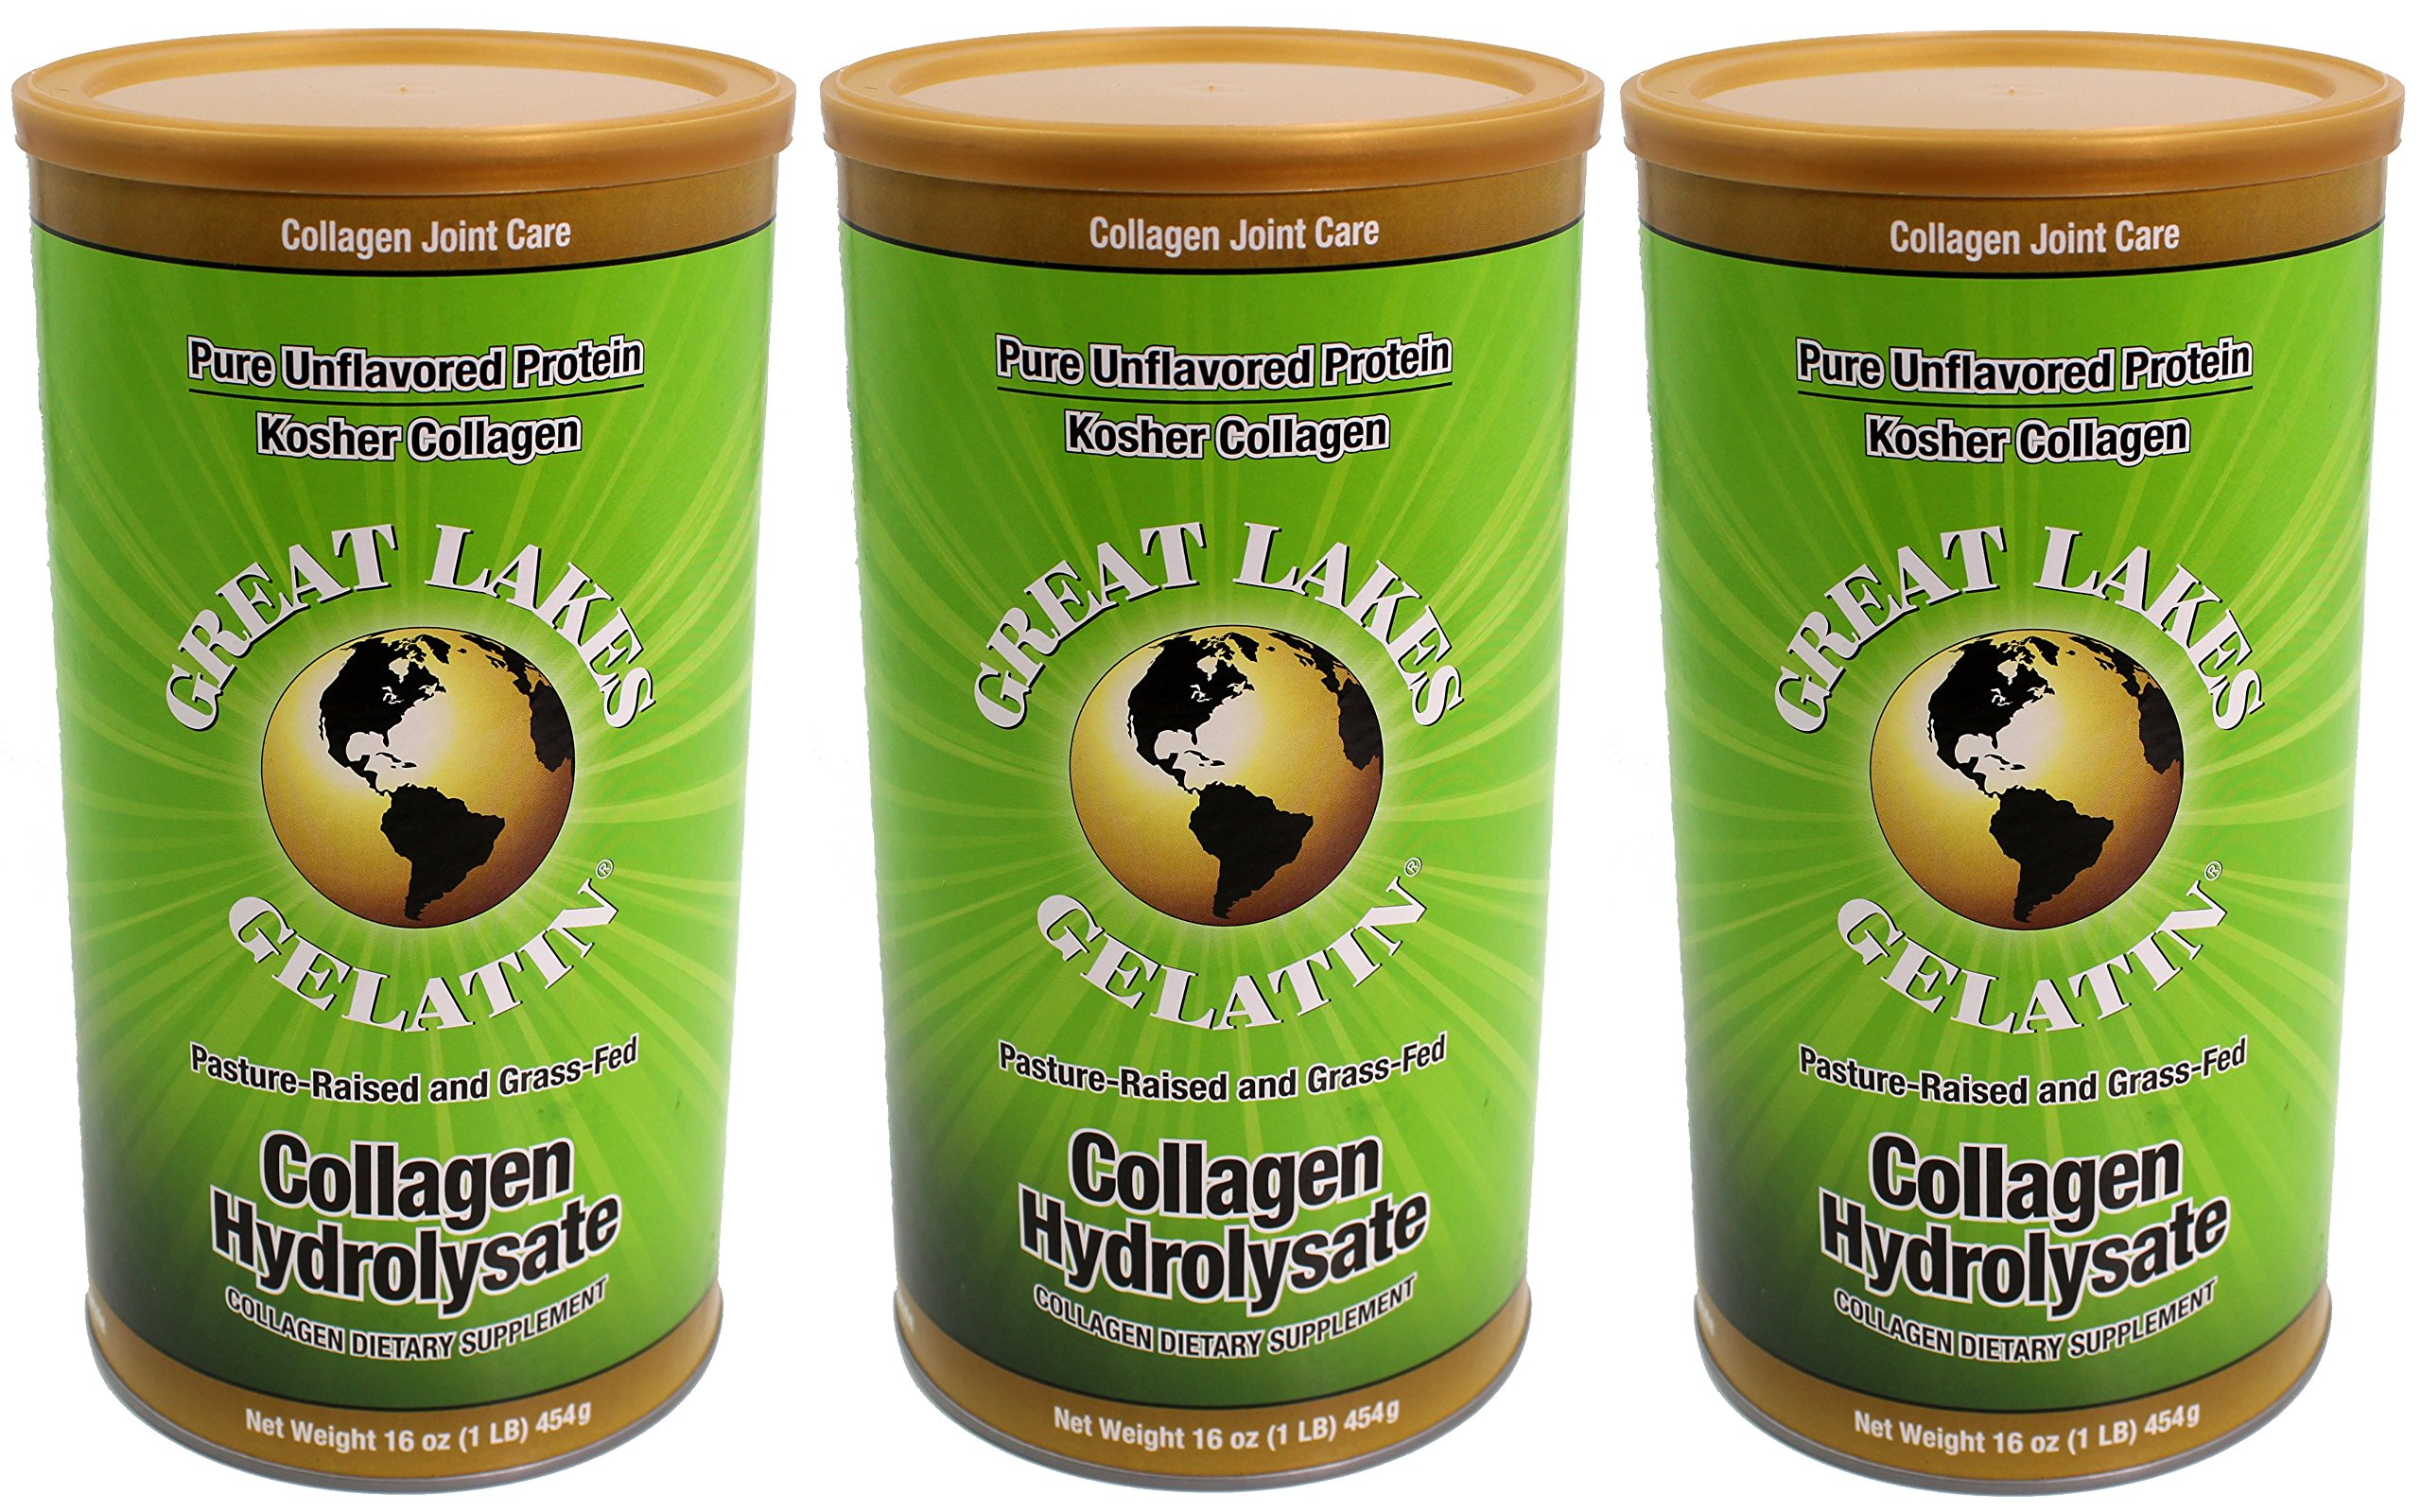 Great Lakes Gelatin, Collagen Hydrolysate, Beef, Kosher, 16 oz, 3-Pack by Great Lakes